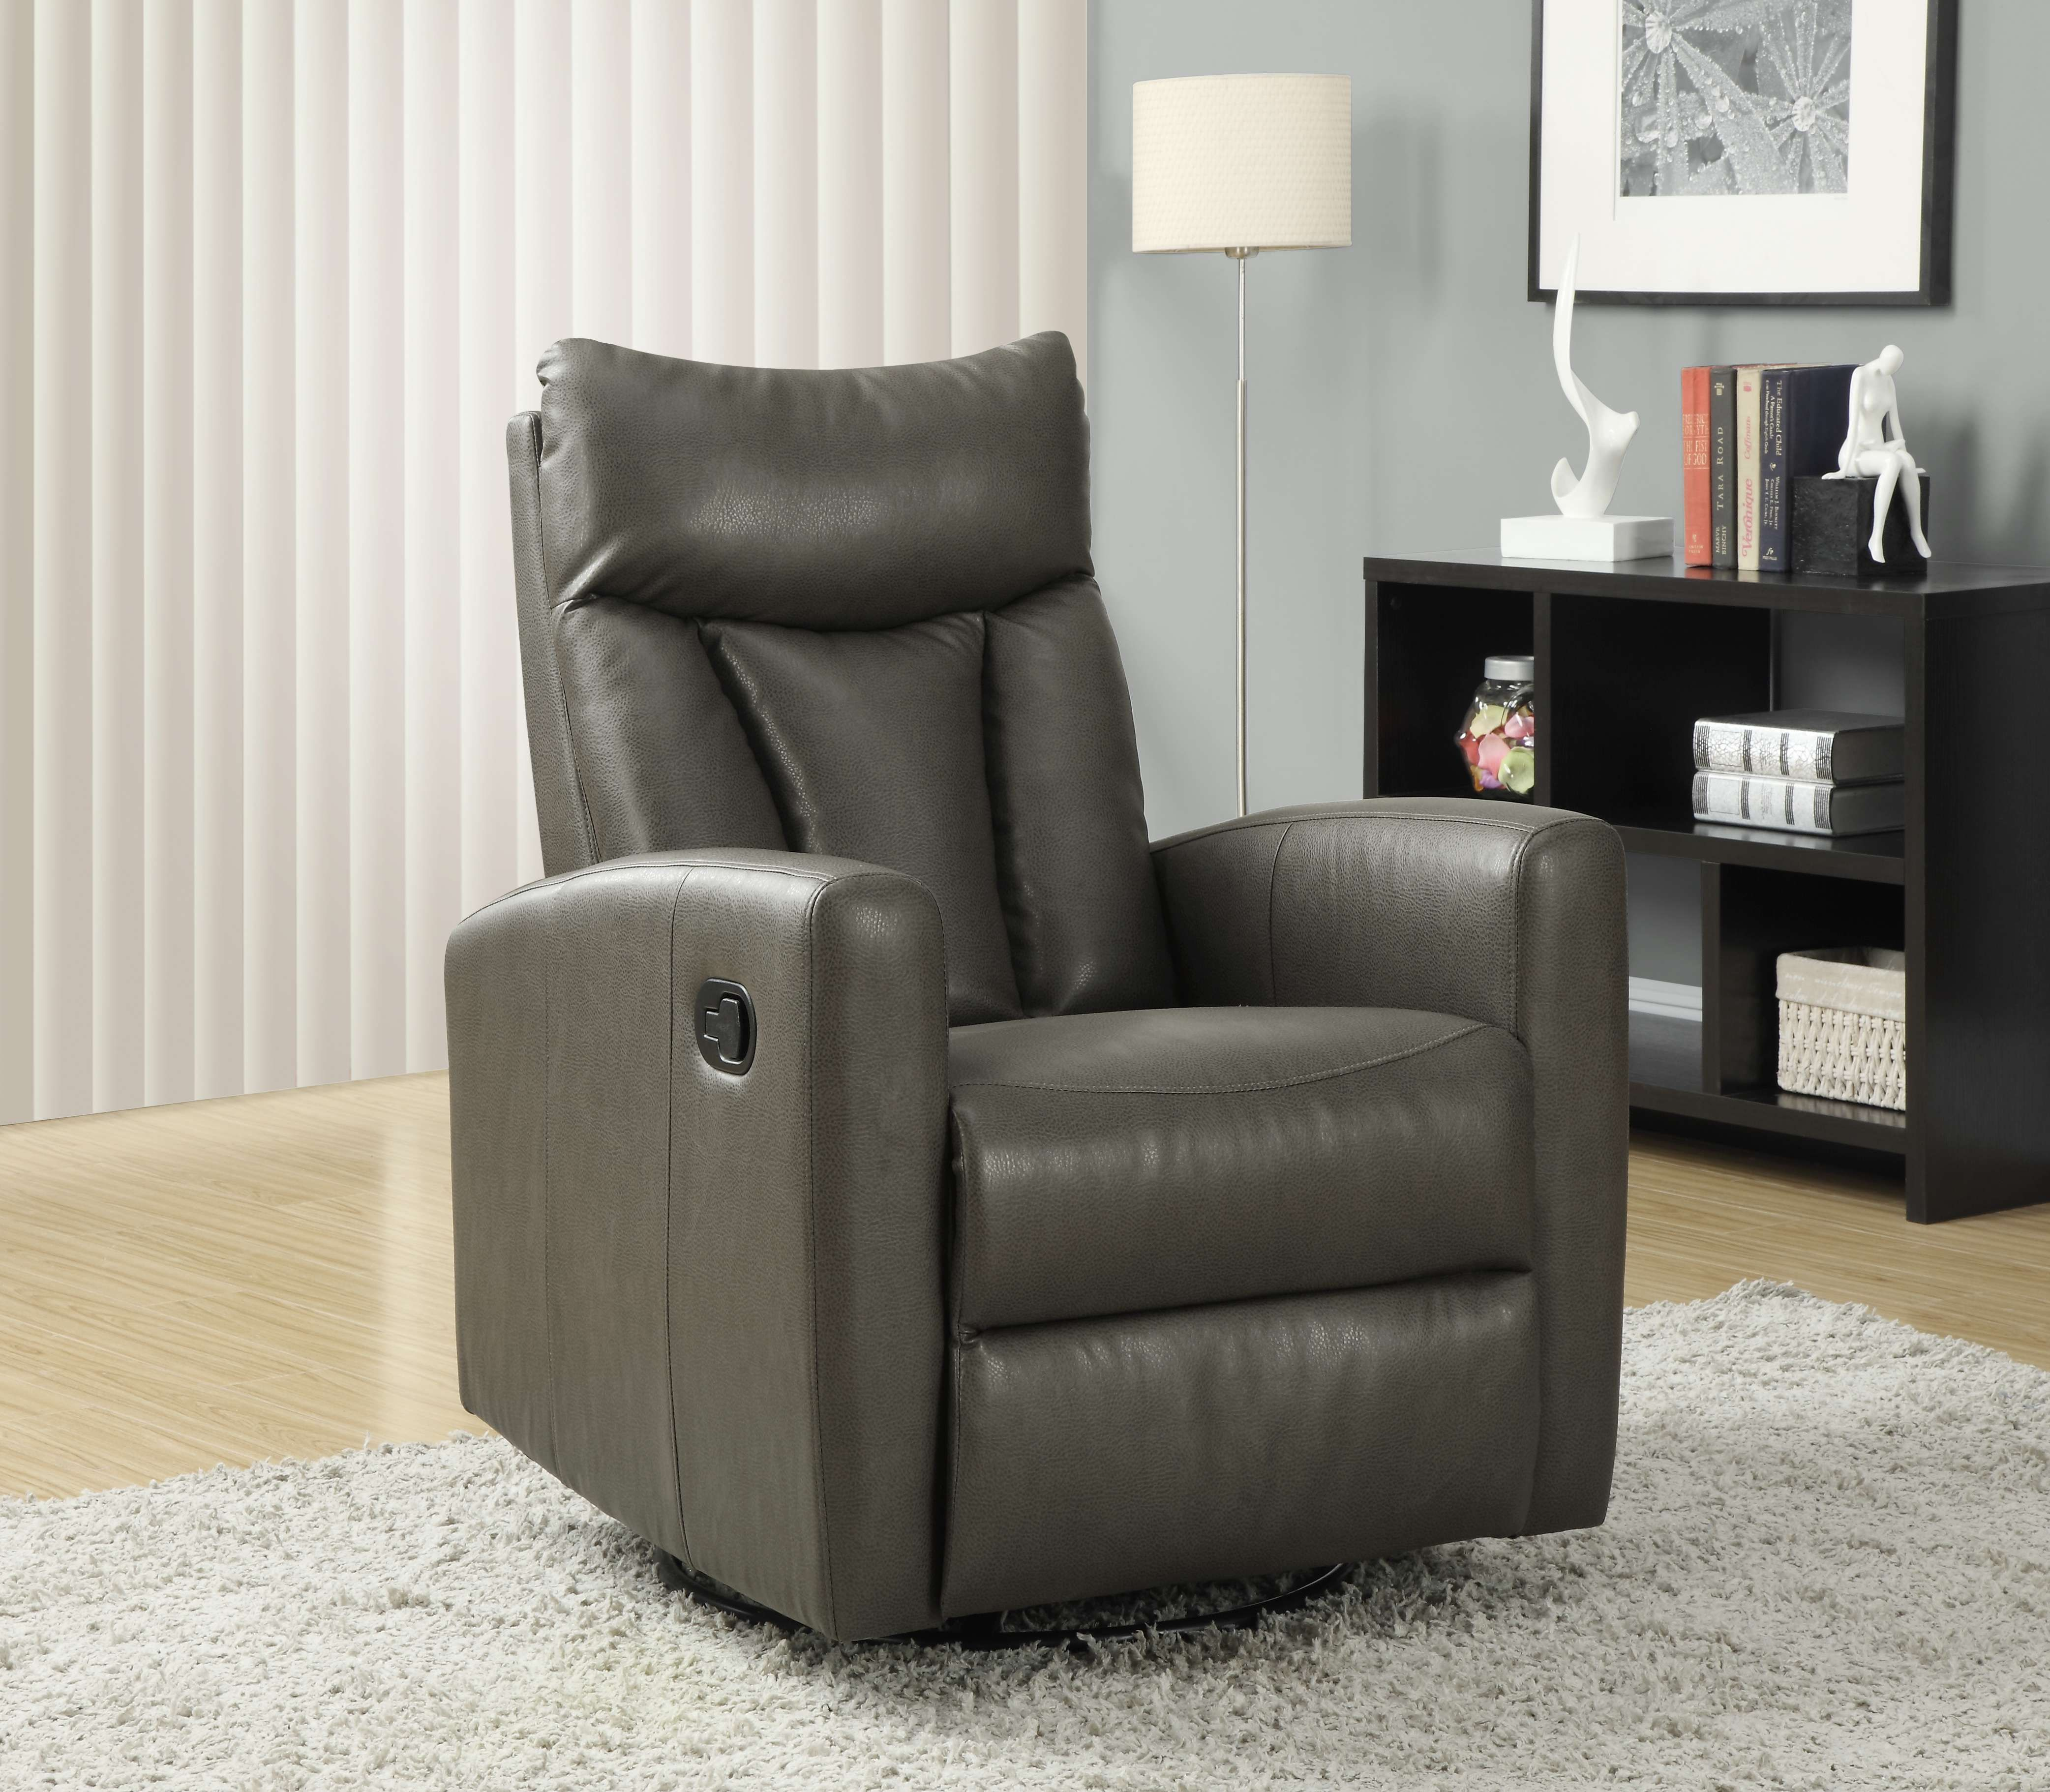 Prime Lowest Price On Monarch Specialties Charcoal Gray Bonded Evergreenethics Interior Chair Design Evergreenethicsorg